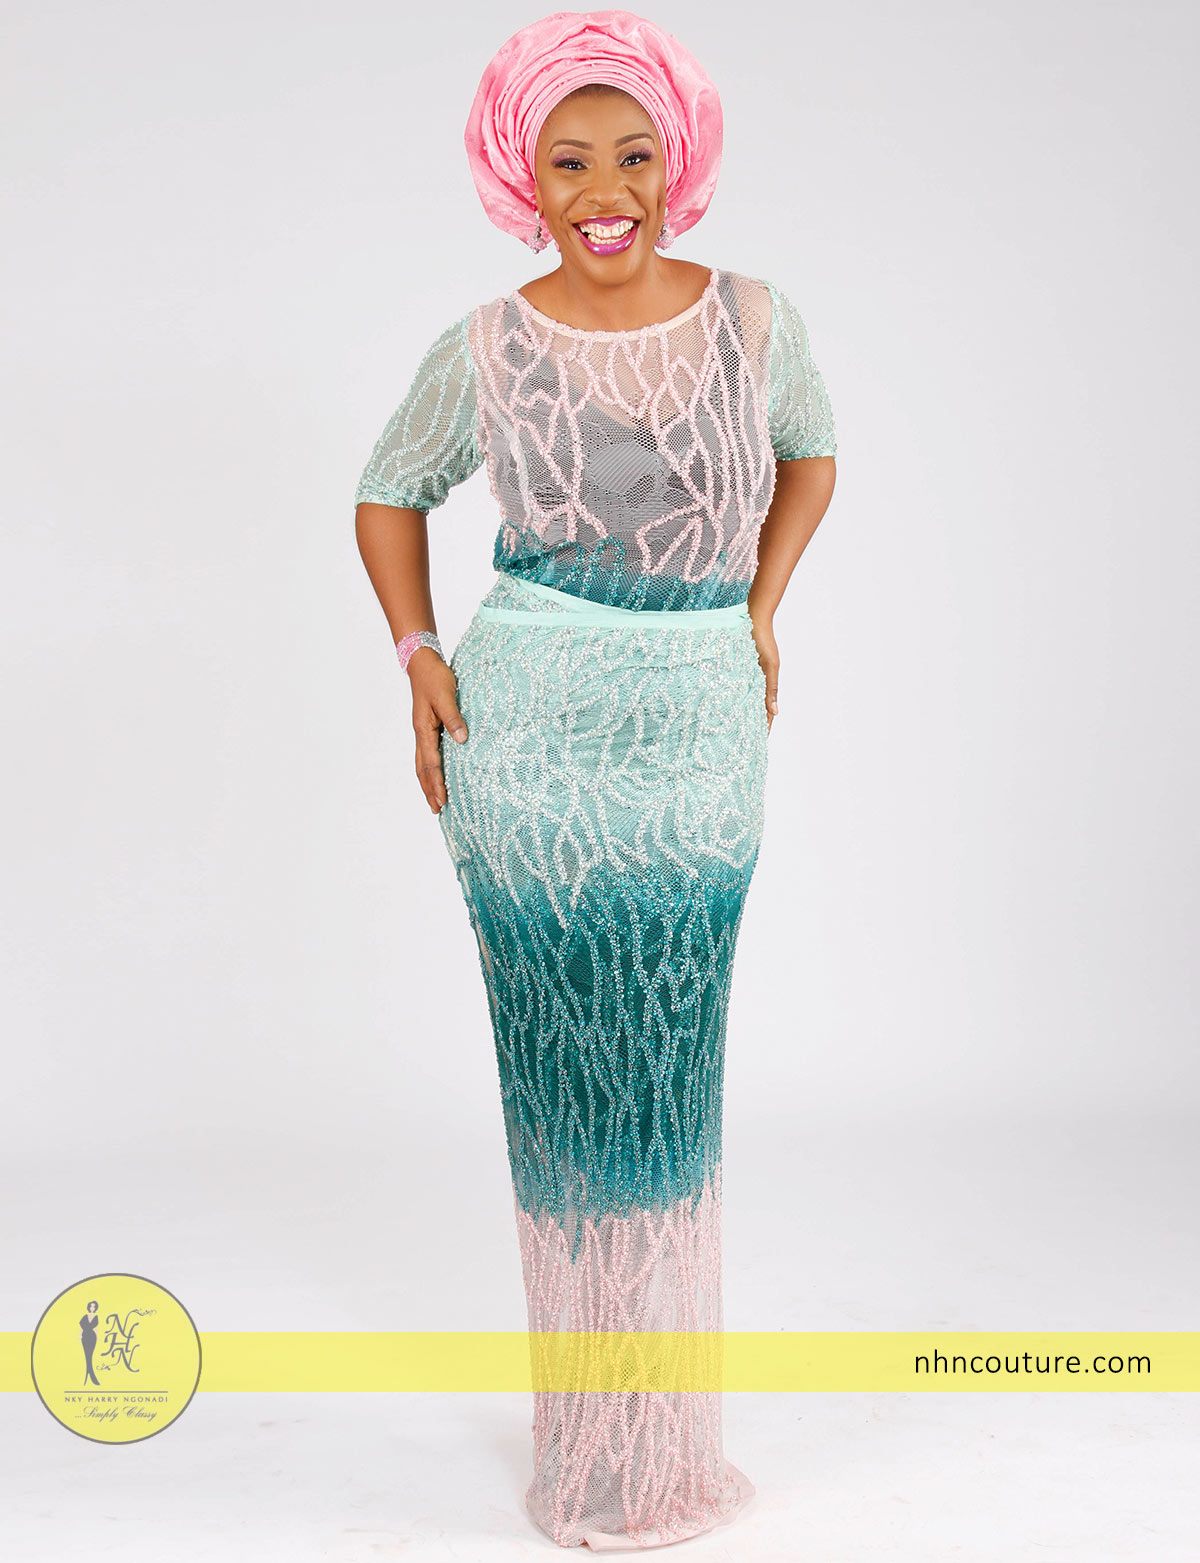 teal-and-pink-sequined-fitted-top-and-wrapper_Nigerian-traditional-attire_asoebi_NHN-Couture_4